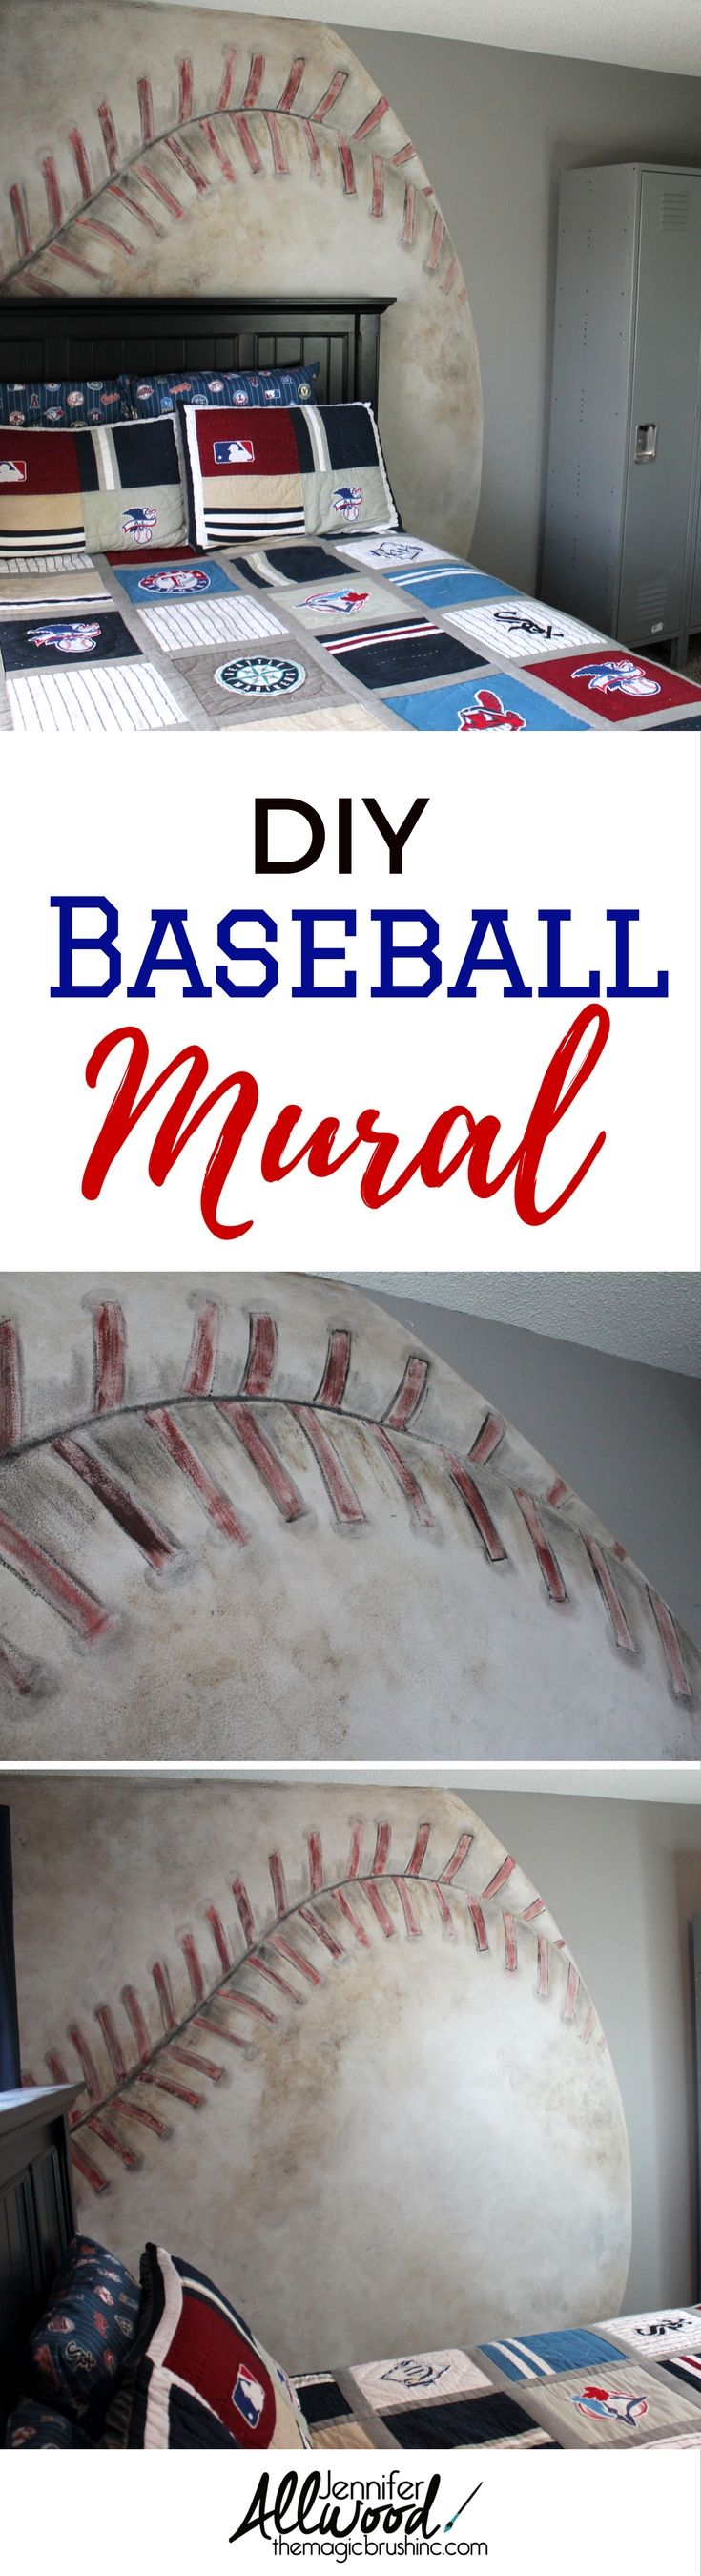 DIY Baseball Mural for Teen's Room - How to paint a baseball mural by Jennifer Allwood of theMagicBrushinc.com   Mural Painting Tips